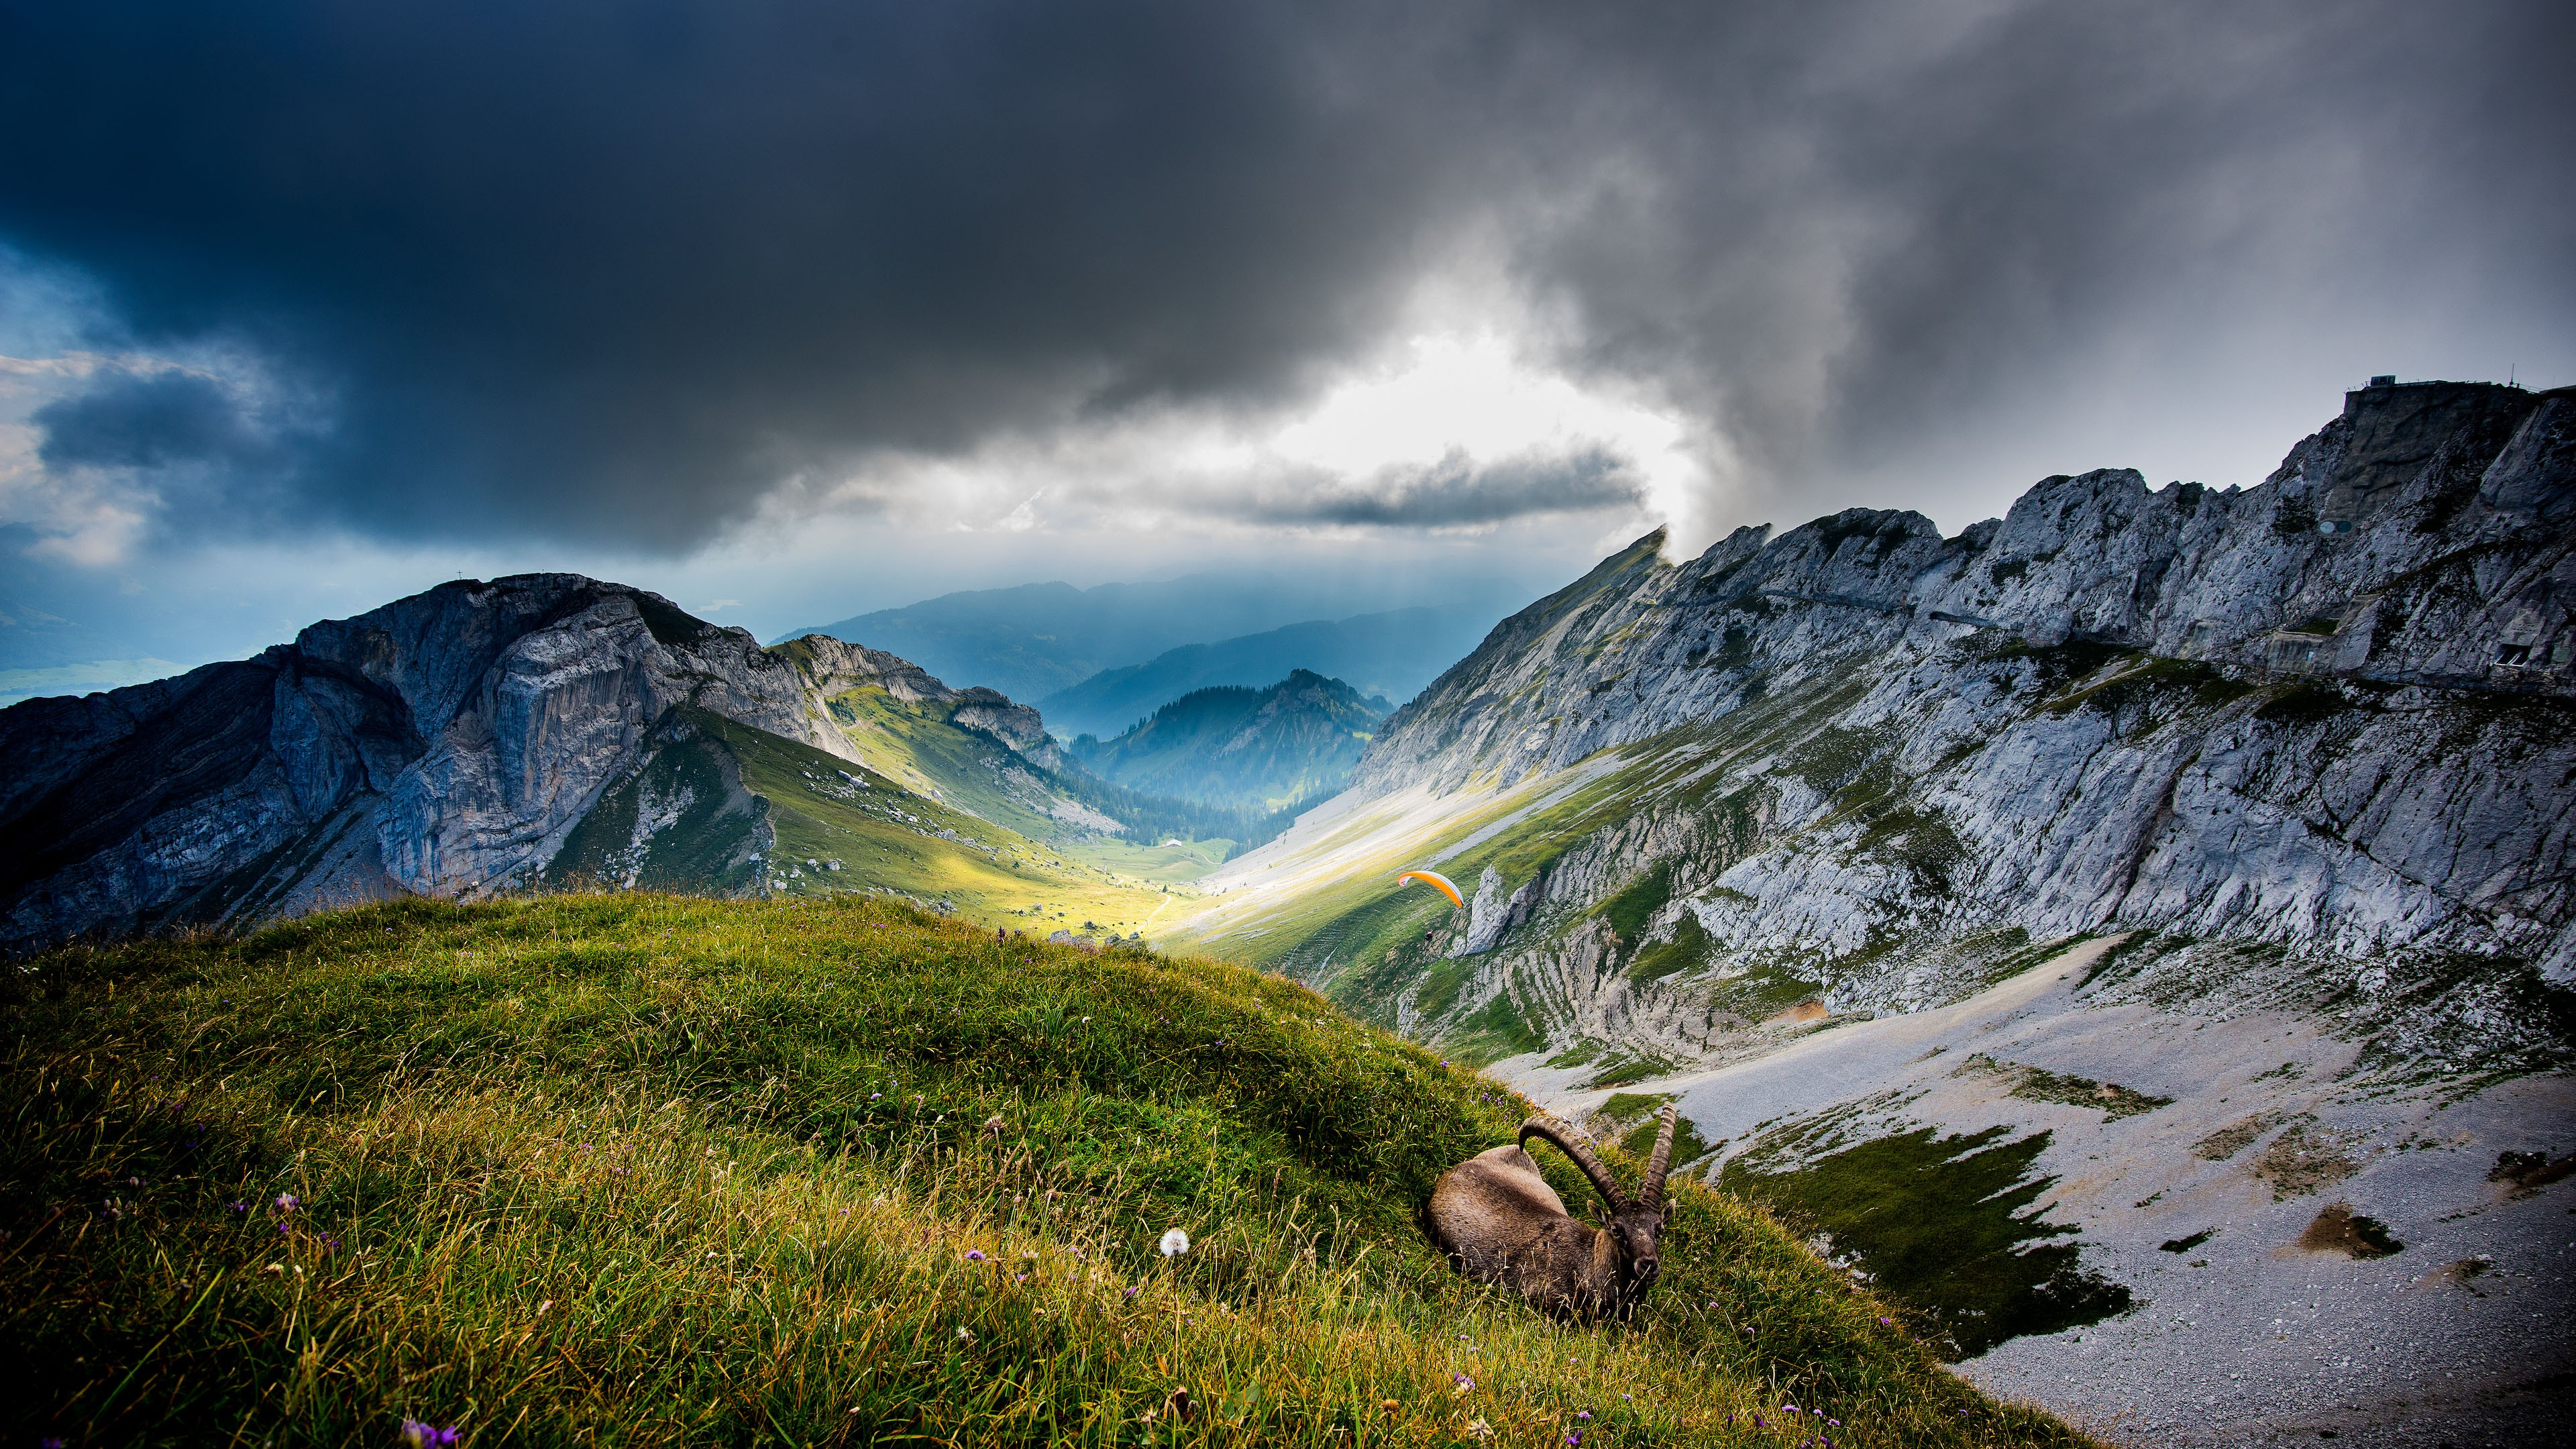 Wallpaper Mount Pilatus 5k 4k Wallpaper Switzerland